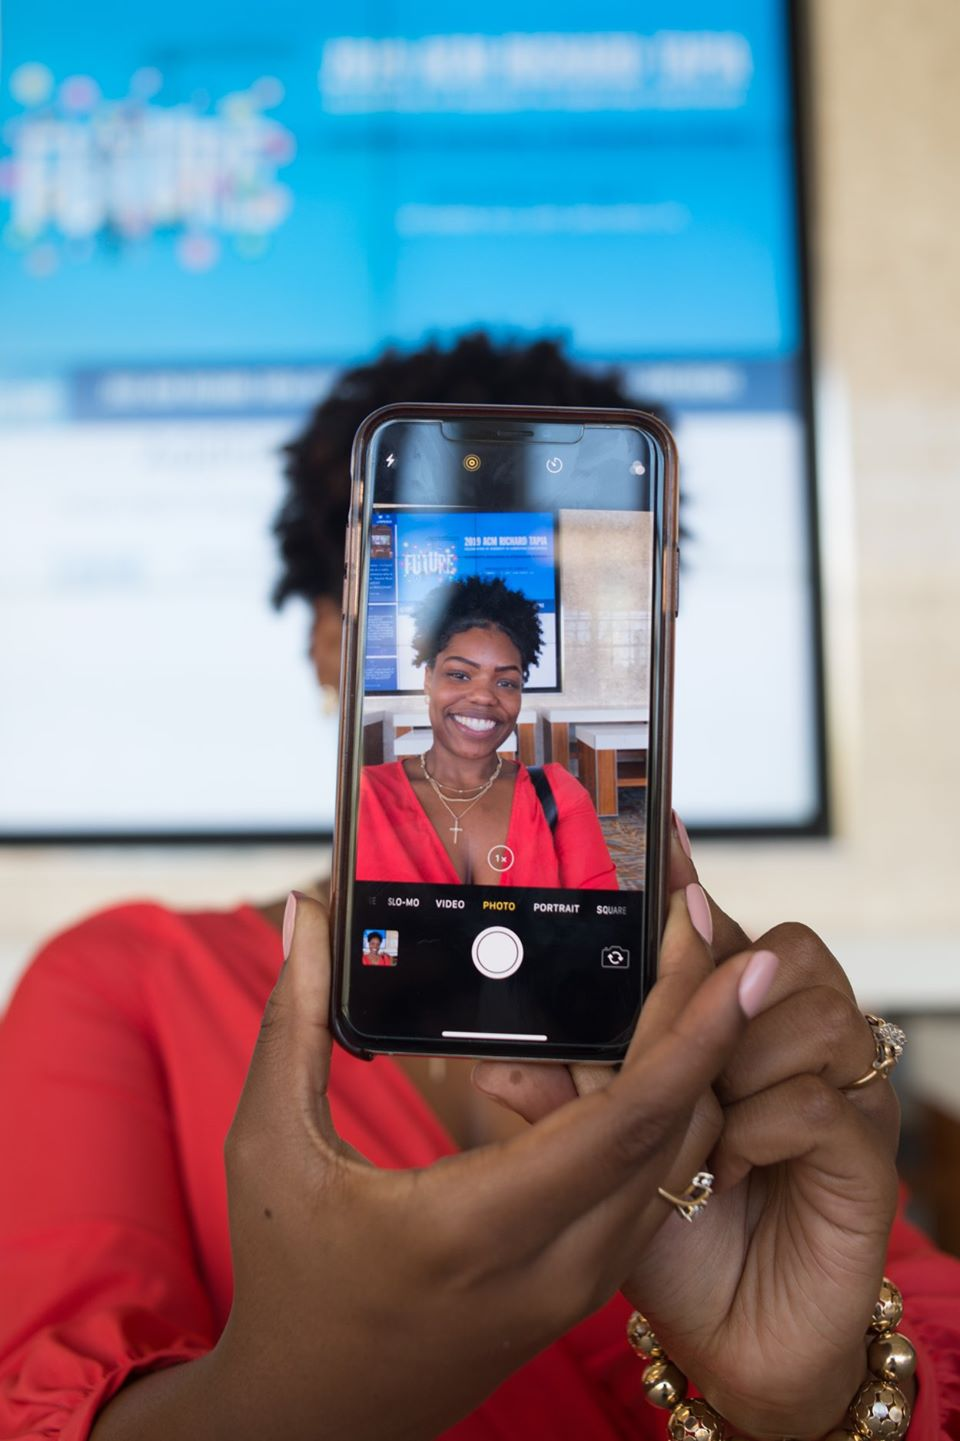 Lady taking a photo of herself with the front of the phone facing towards the camera